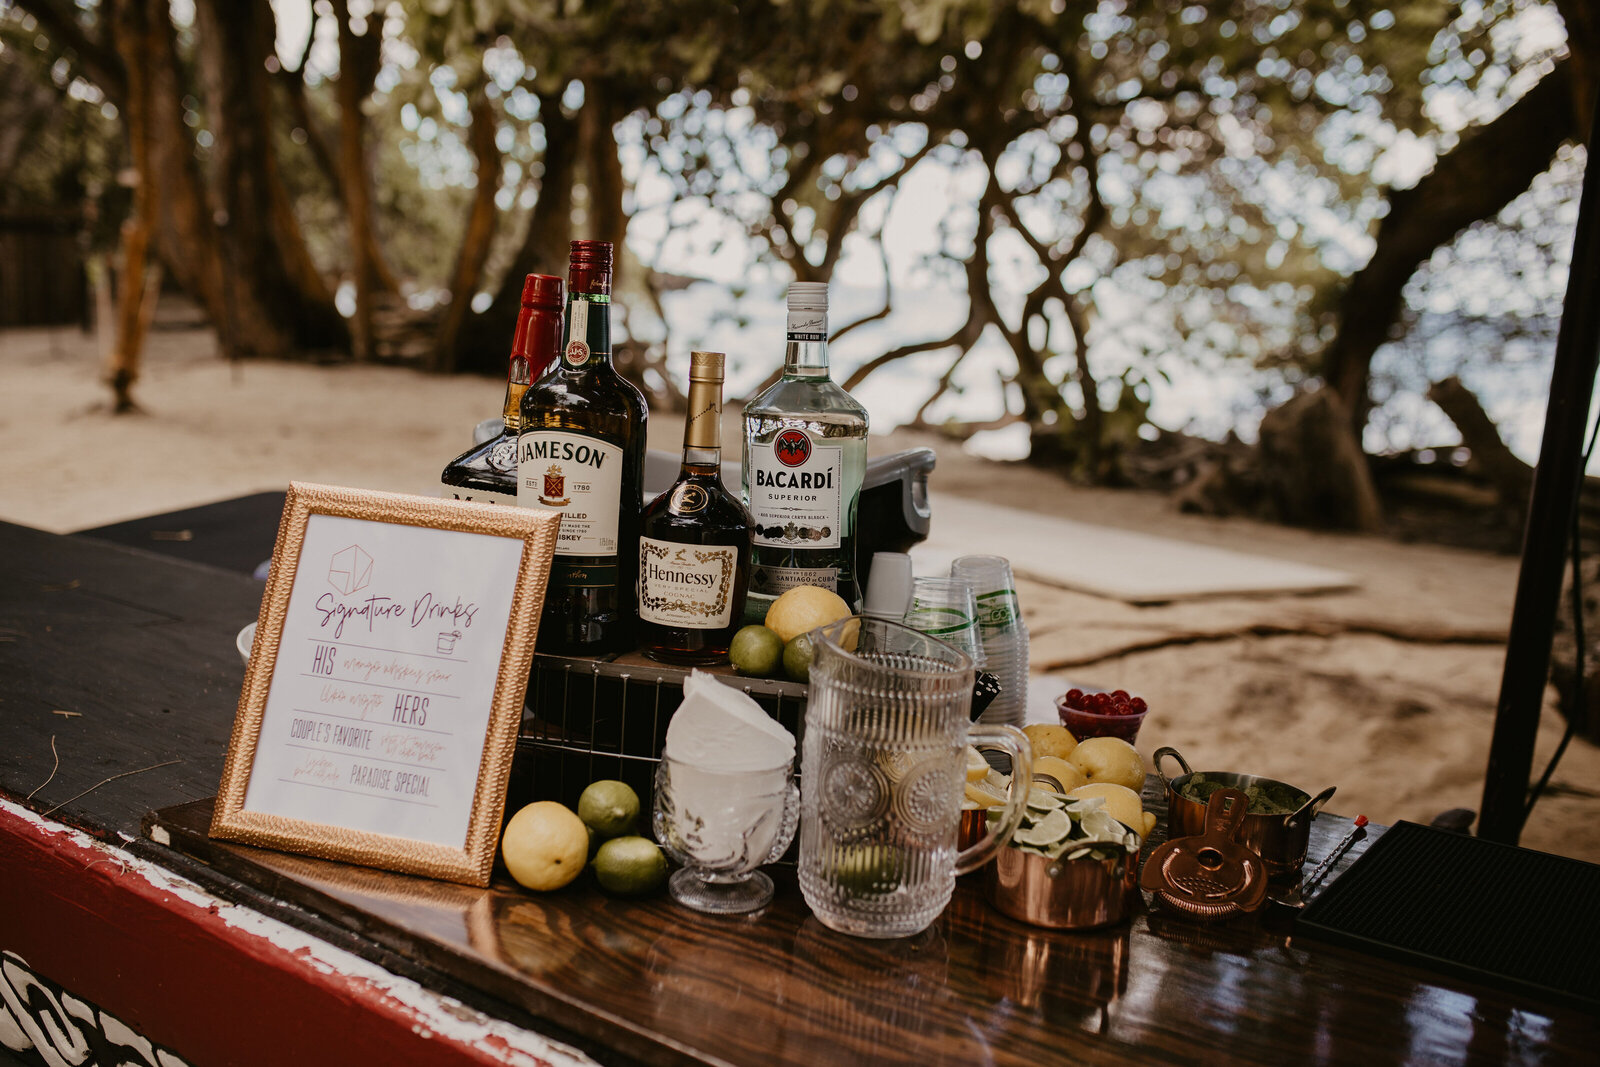 Tropical Wedding Bar Setup - Hale Koa Estate Laie